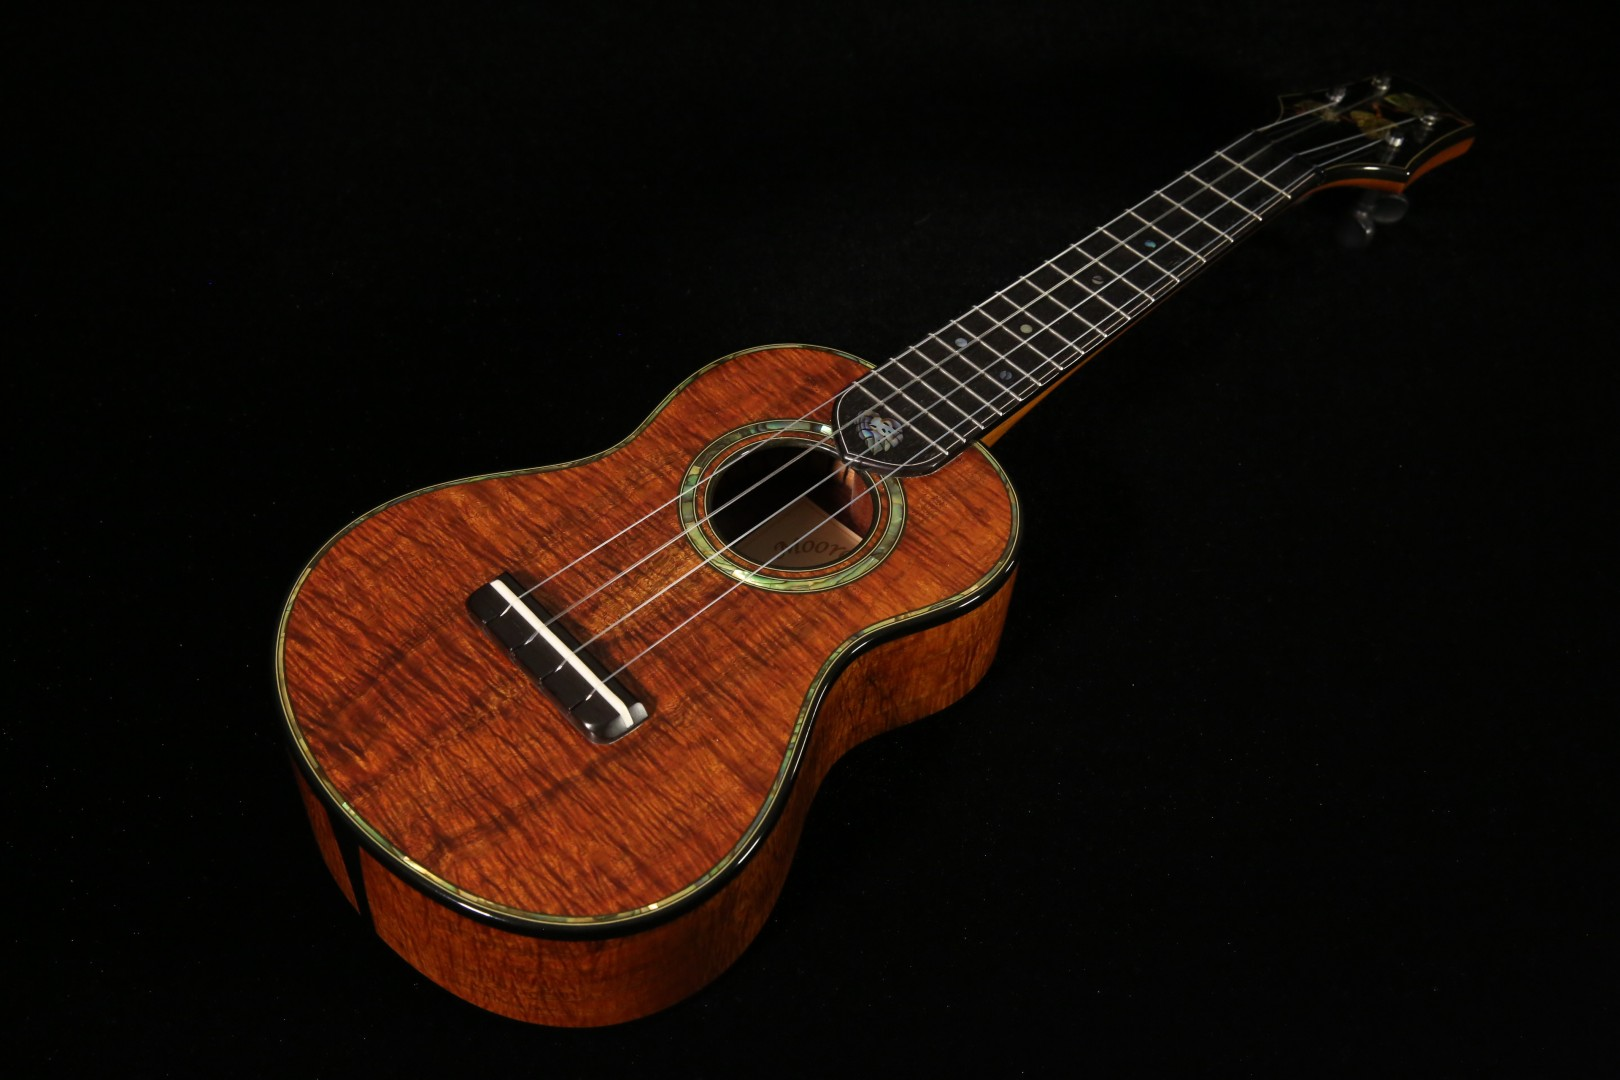 Ukulele For Sale : ukulele friend custom moore bettah ukulele for sale ~ Russianpoet.info Haus und Dekorationen